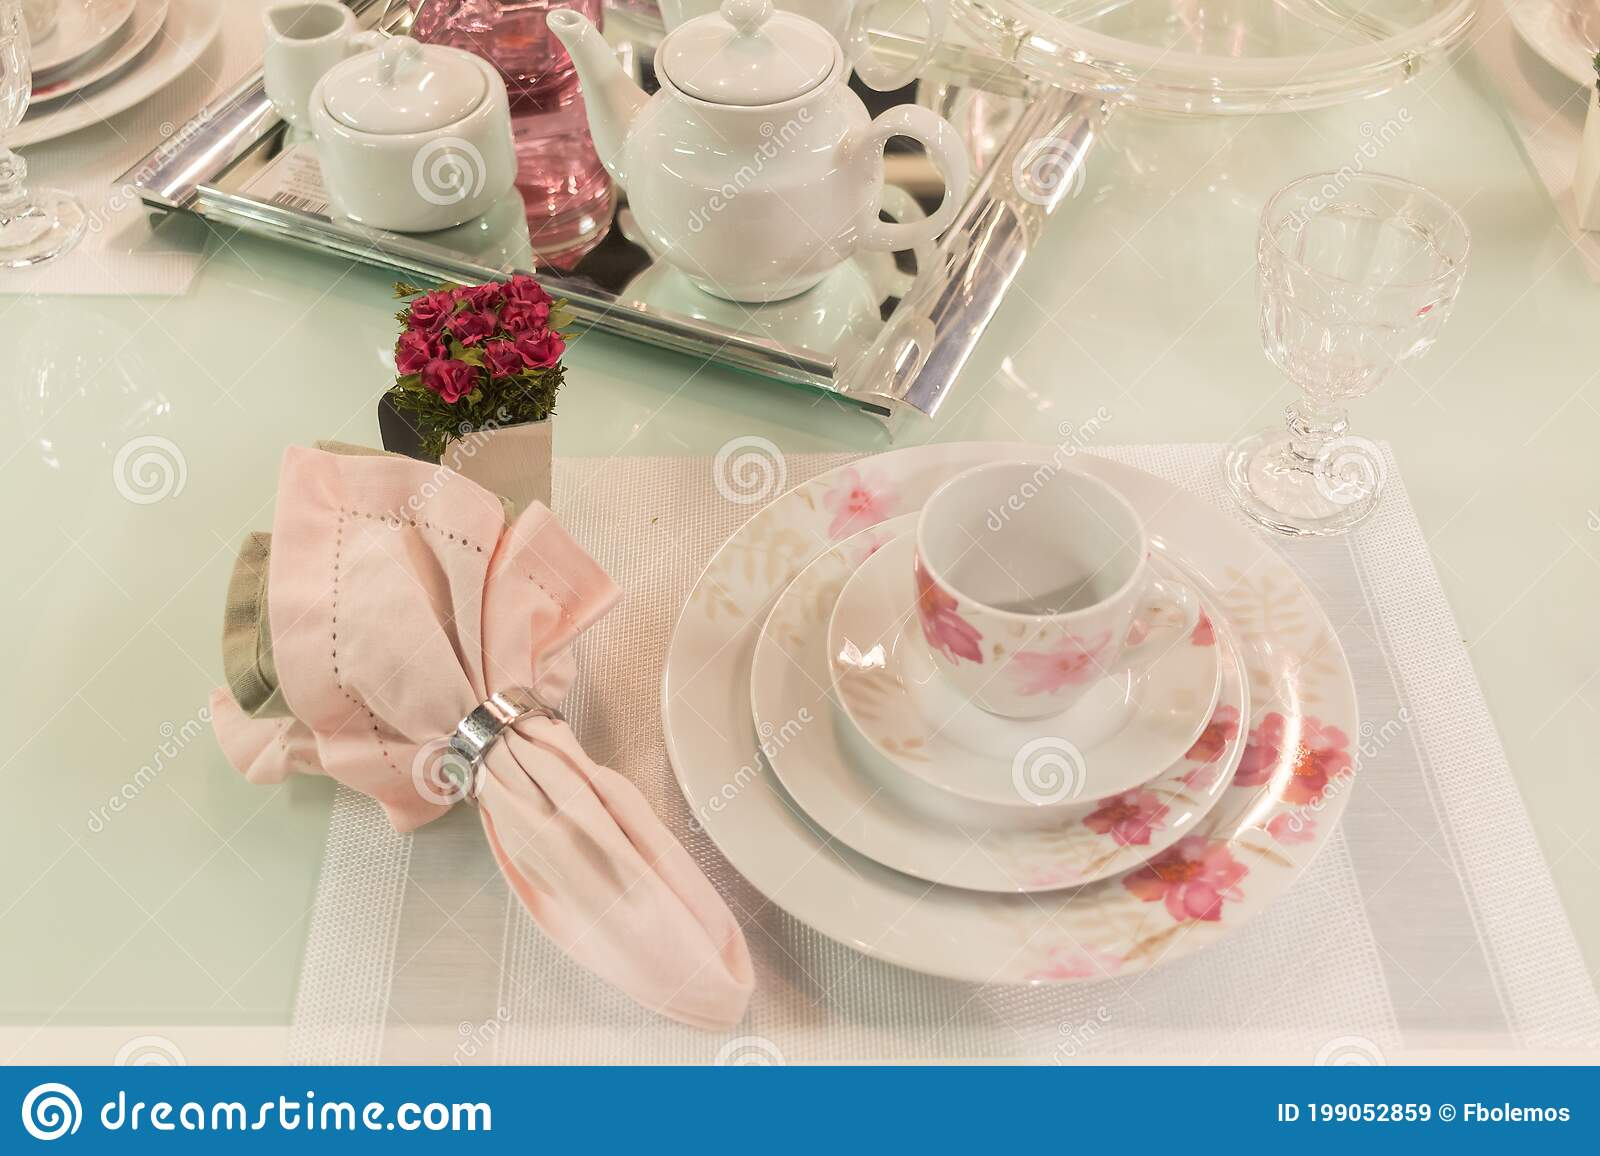 coffee table or dinner stock image image of colorful 199052859